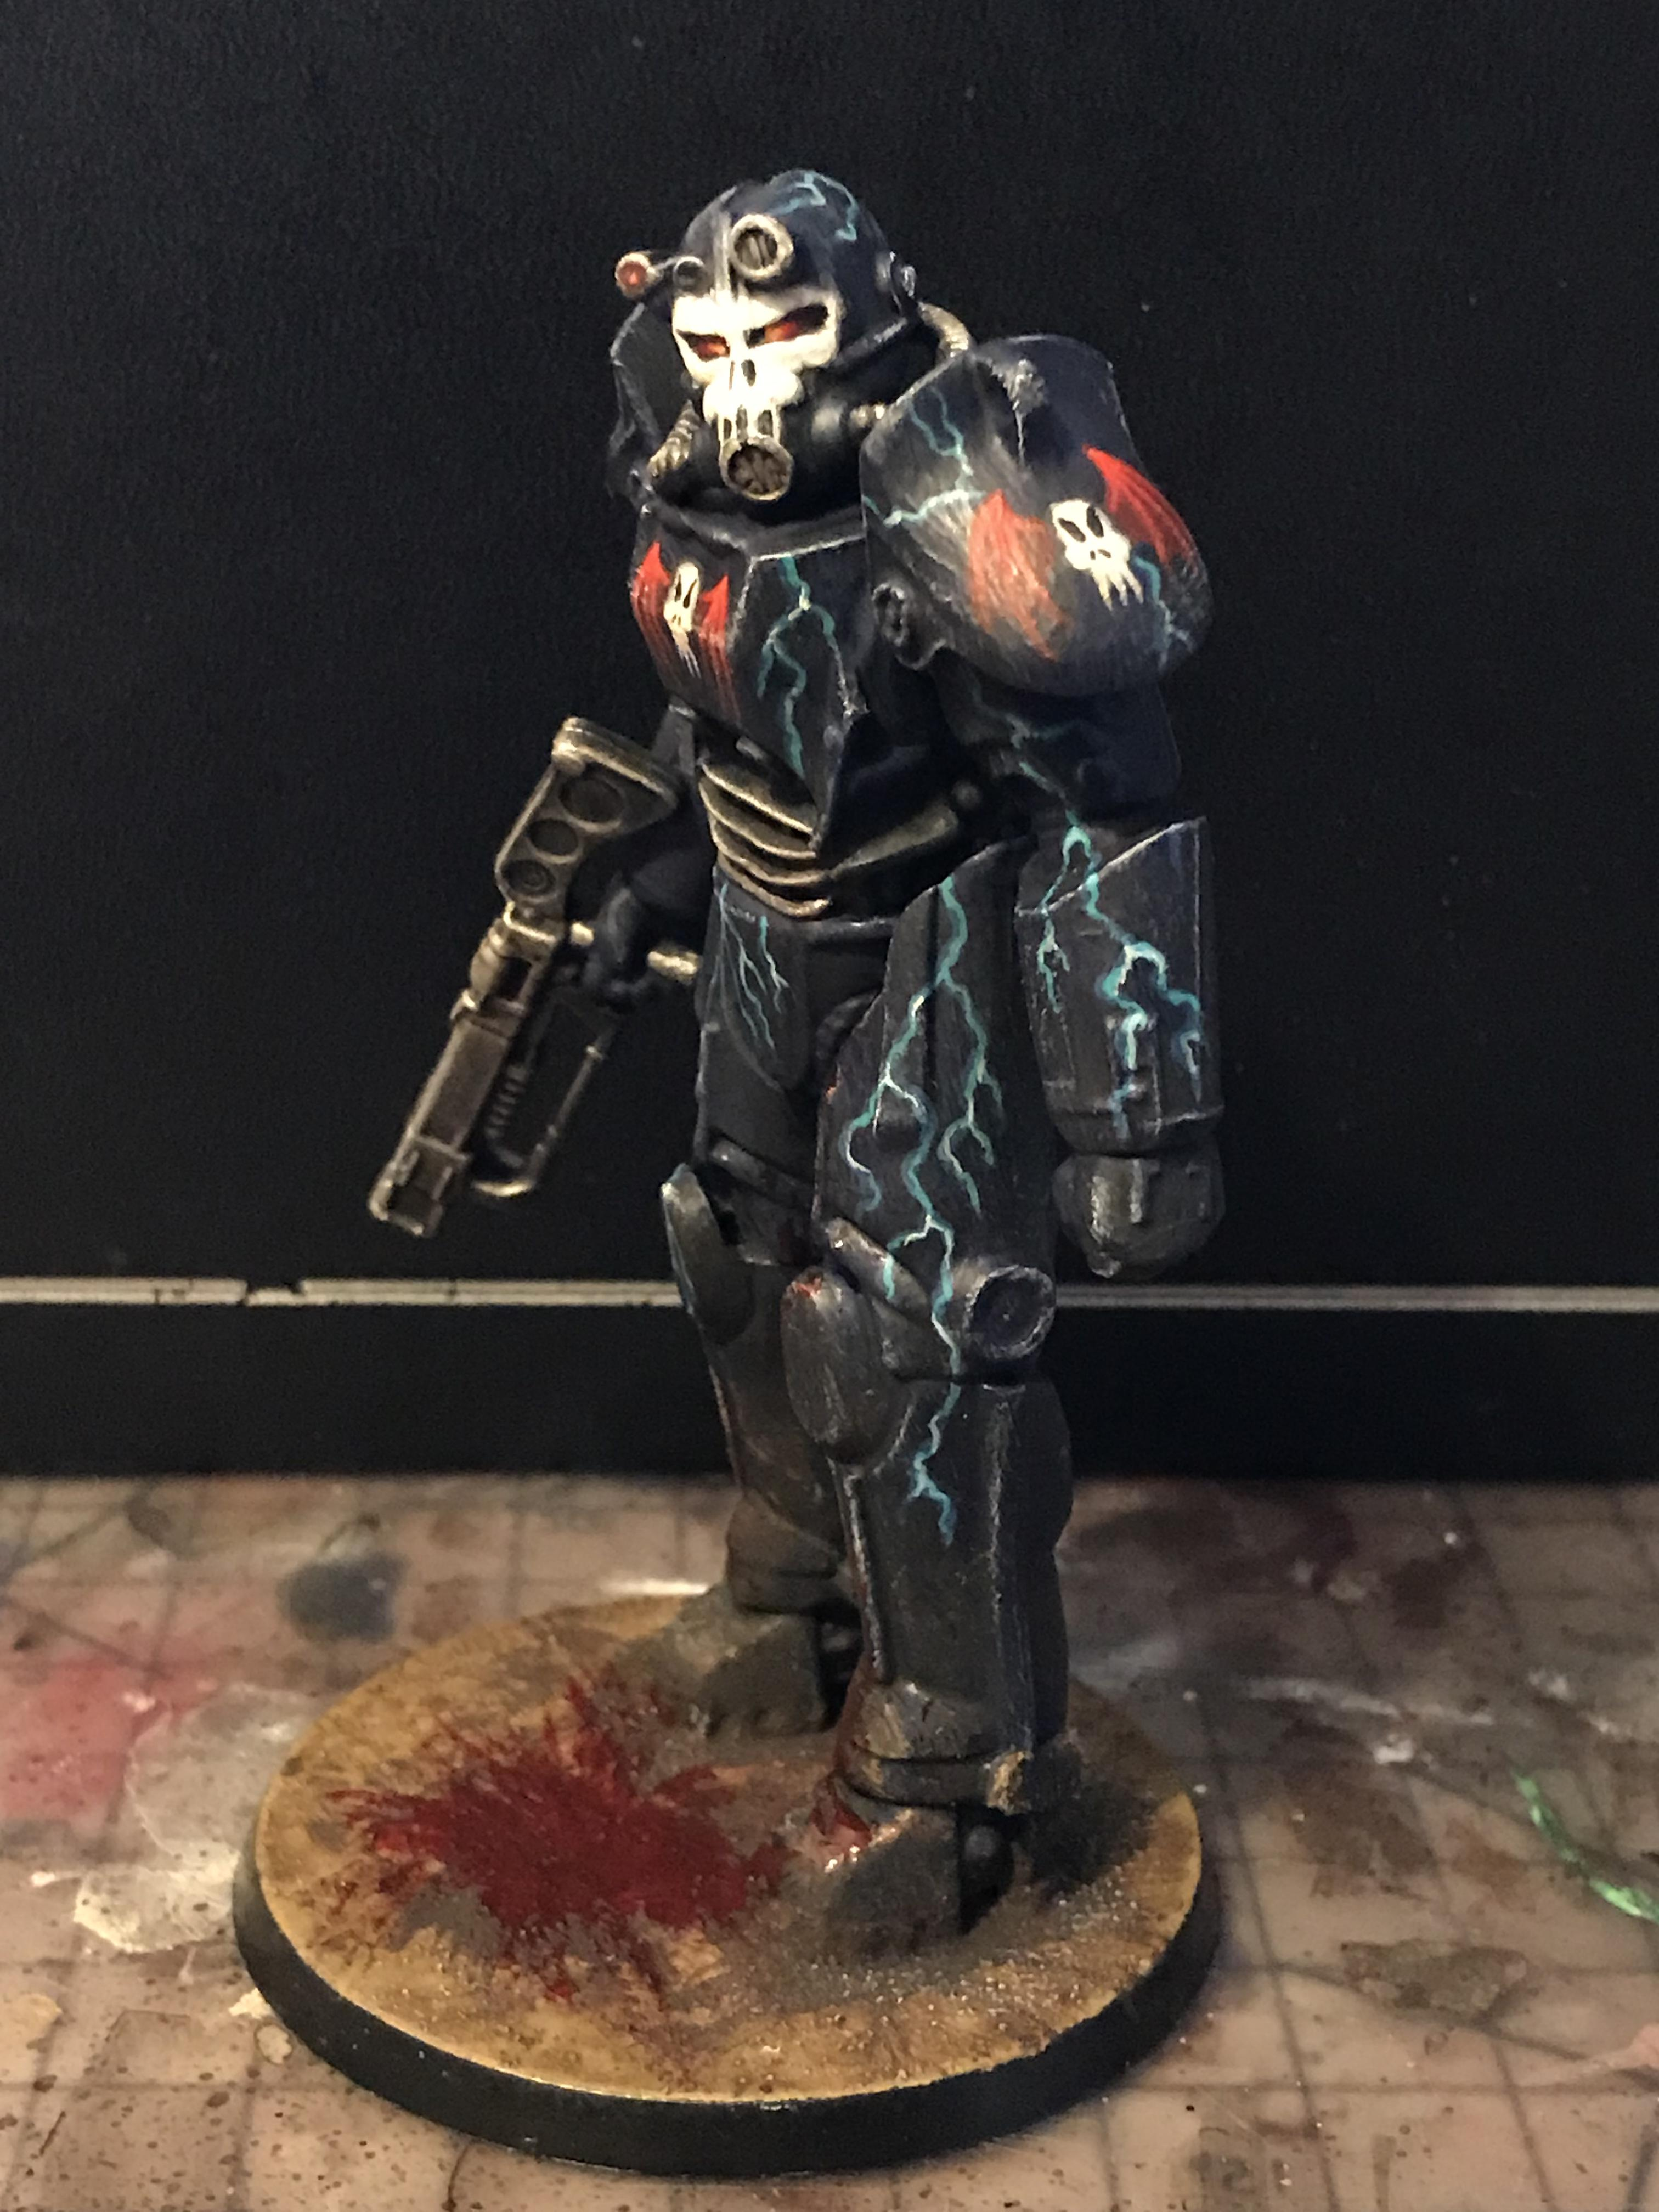 Armor, Army, Assault, Astardes, Attack, Black, Blood, Brotherhood, Chaos, Chosen, Conversion, Corrupted, Crimson, Curze, Death, Evil, Fallout, Fast, Flayed, Flayer, Flesh, Green, Grisly, Hand, Heresy, Heretic, Horrors, Horus, Kaos, Kill, Killers, Kit Bash, Konrad, Legion, Legionnaire, Legionnaires, Legionnes, Legions, Lightning, Lord, Lords, Man, Mask, Murder, Murderers, Night, Night Lords, Pained, Pirate, Pirates, Power, Primarch, Rage, Raiders, Raptors, Reaver, Reavers, Red, Renegade, Renegades, Retinue, Saboteur, Sculpting, Shadow, Shroud, Skin, Soul, Space, Space Marines, Stalkers, Stealth, Steel, Stuff, Tactics, Team, Terror, Torture, Traitor, Traitors, Troops, Trophies, Twisted, Veteran, Vile, Violence, Violent